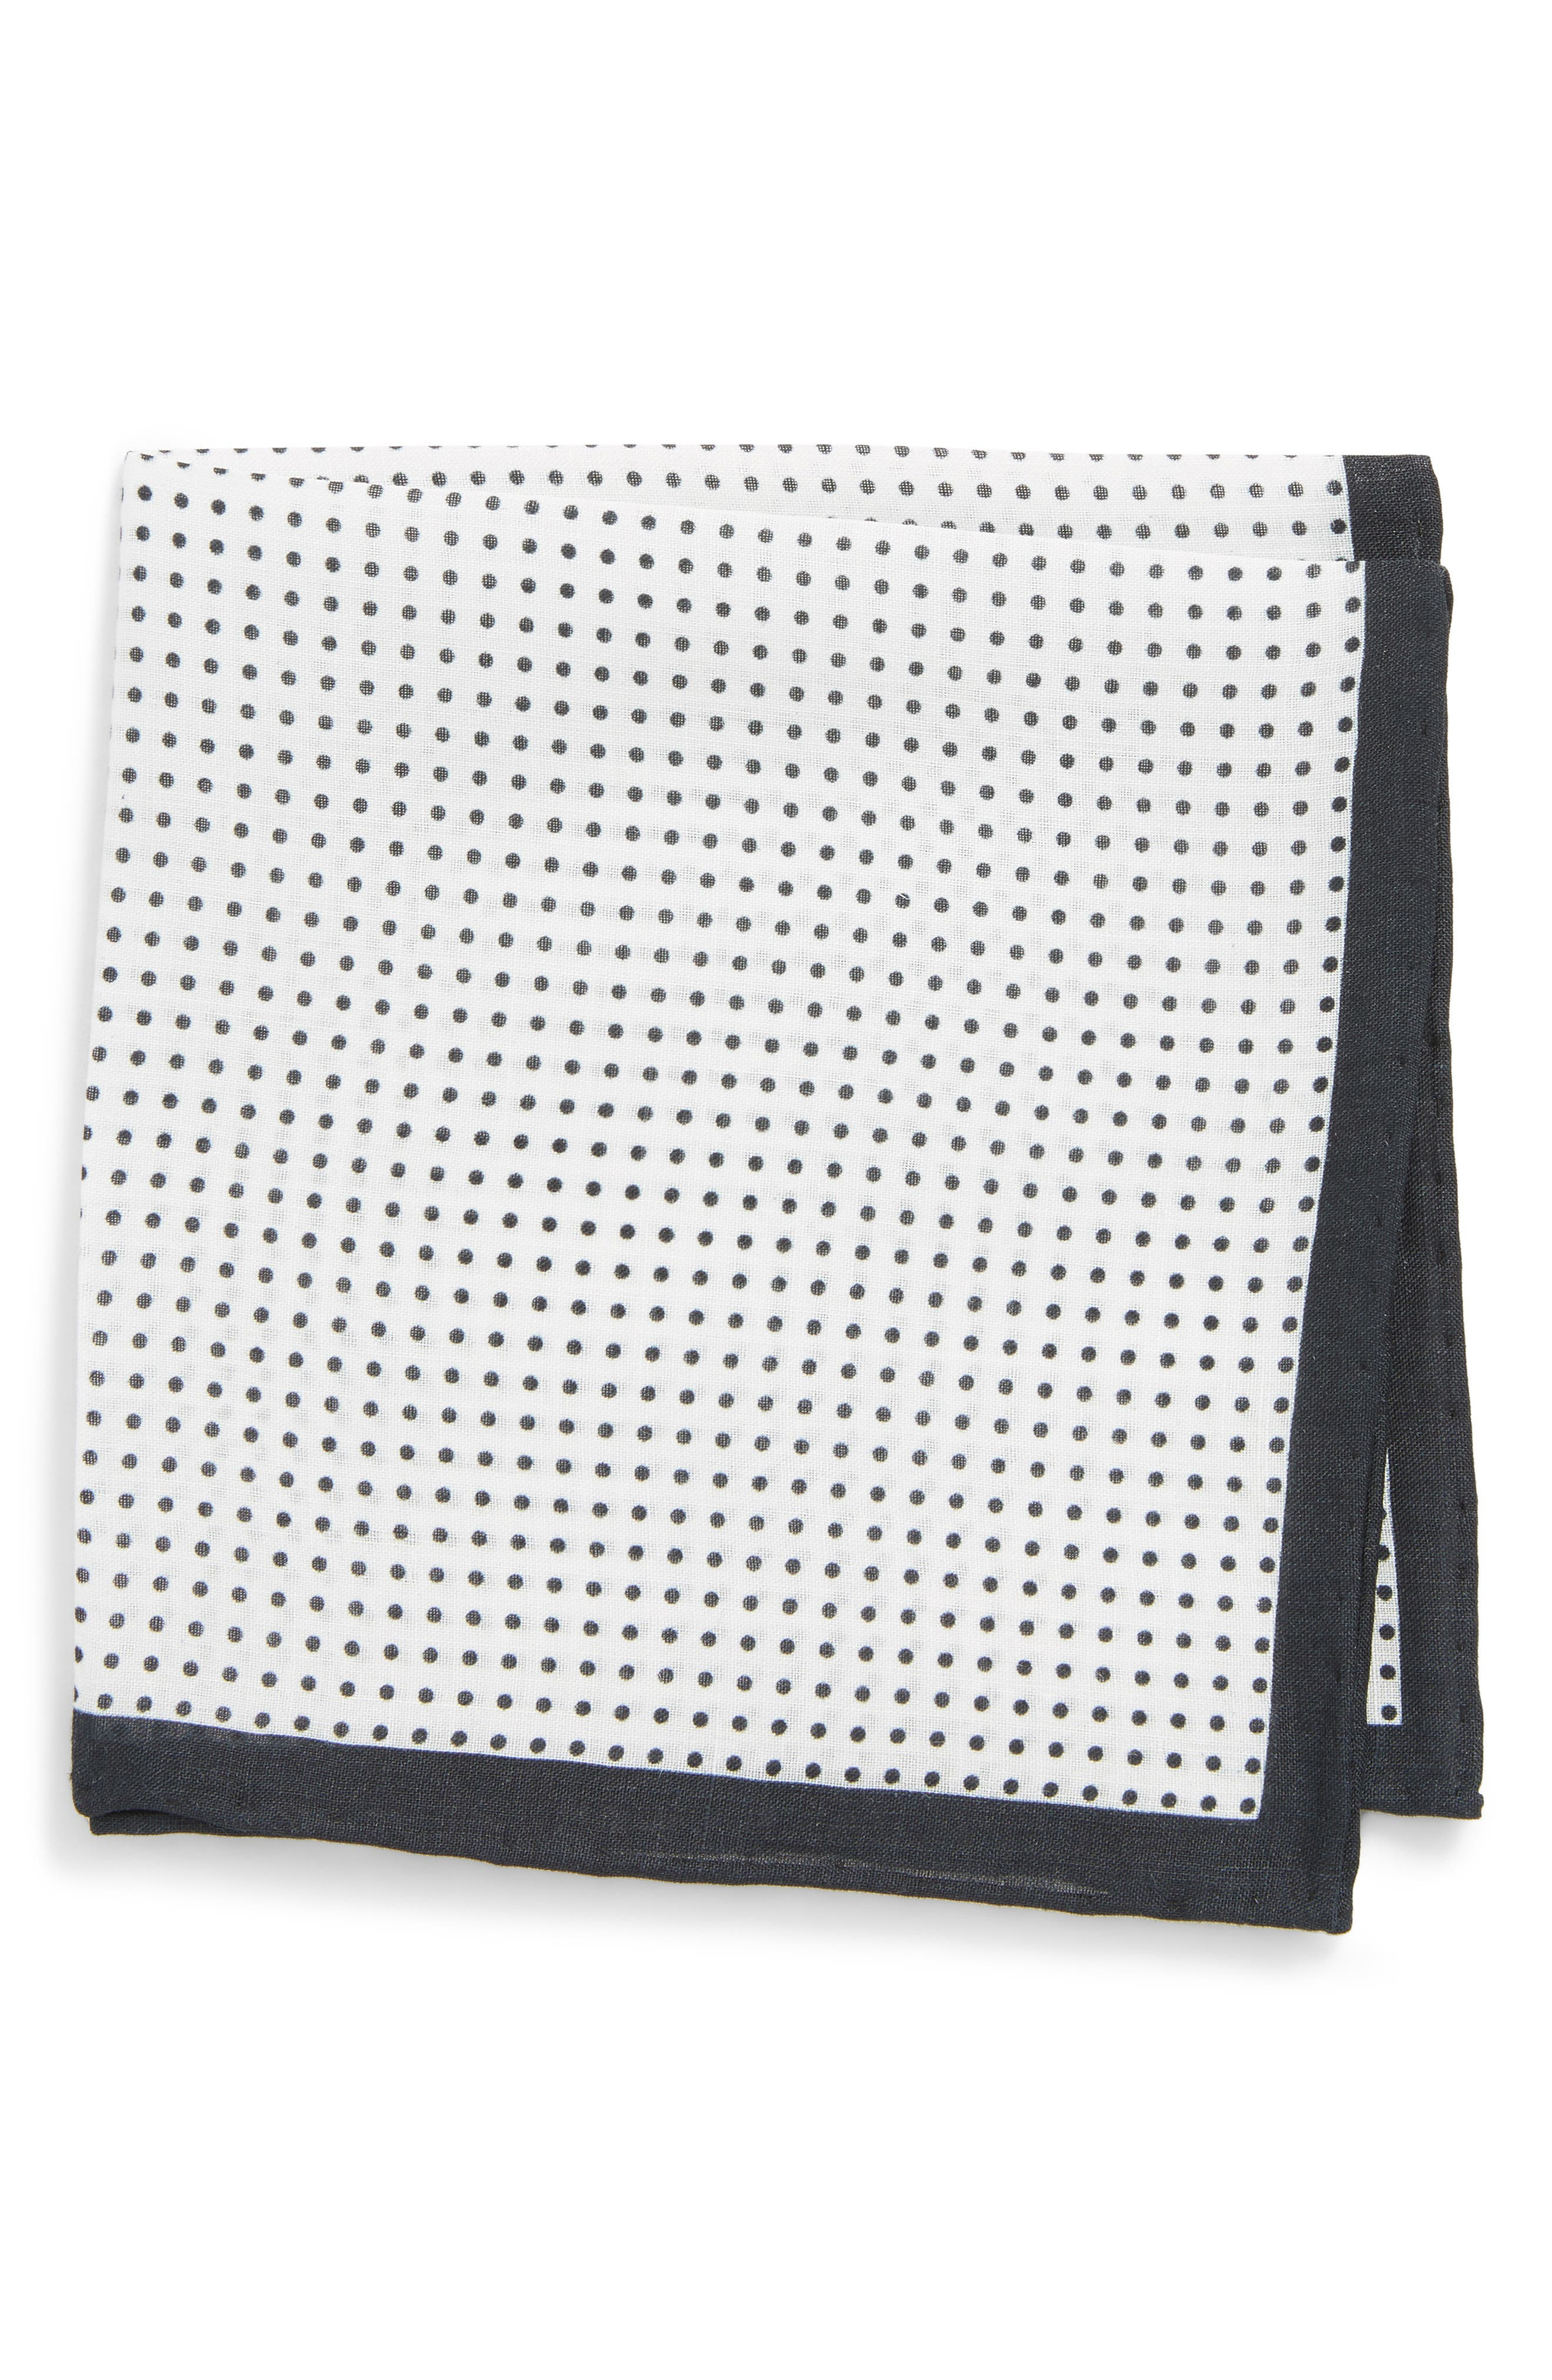 Domino Dot Linen Pocket Square,                             Main thumbnail 1, color,                             001